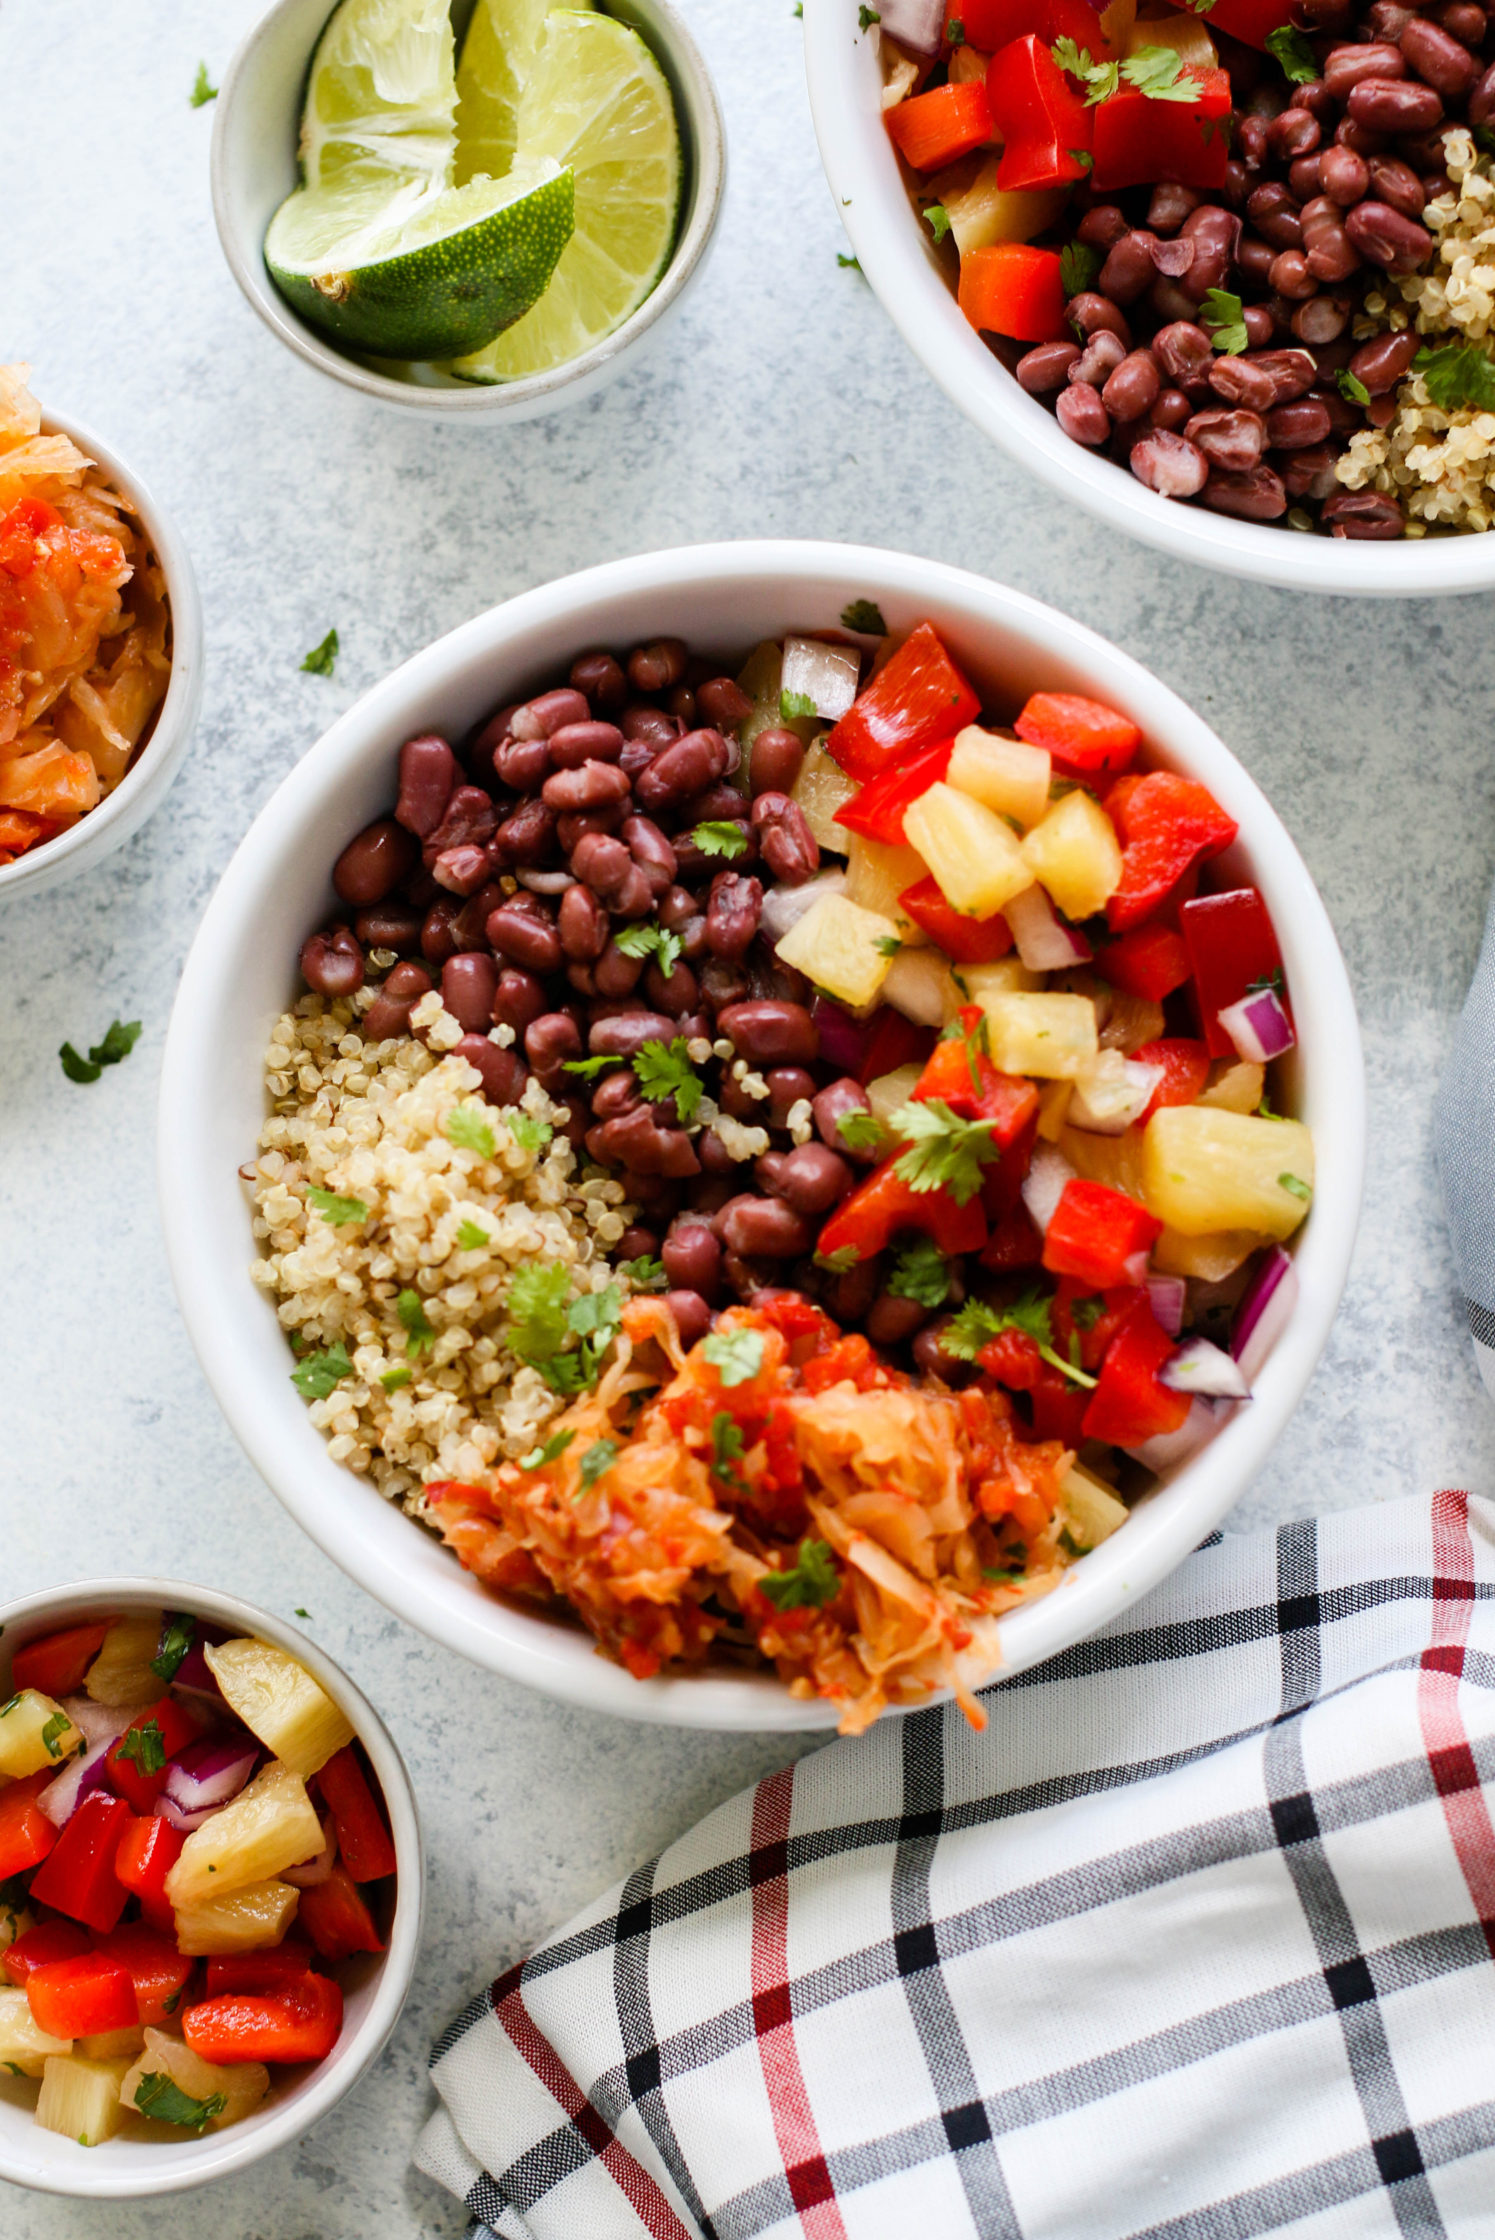 Adzuki Bean Bowl with Pineapple Salsa by Flora & Vino